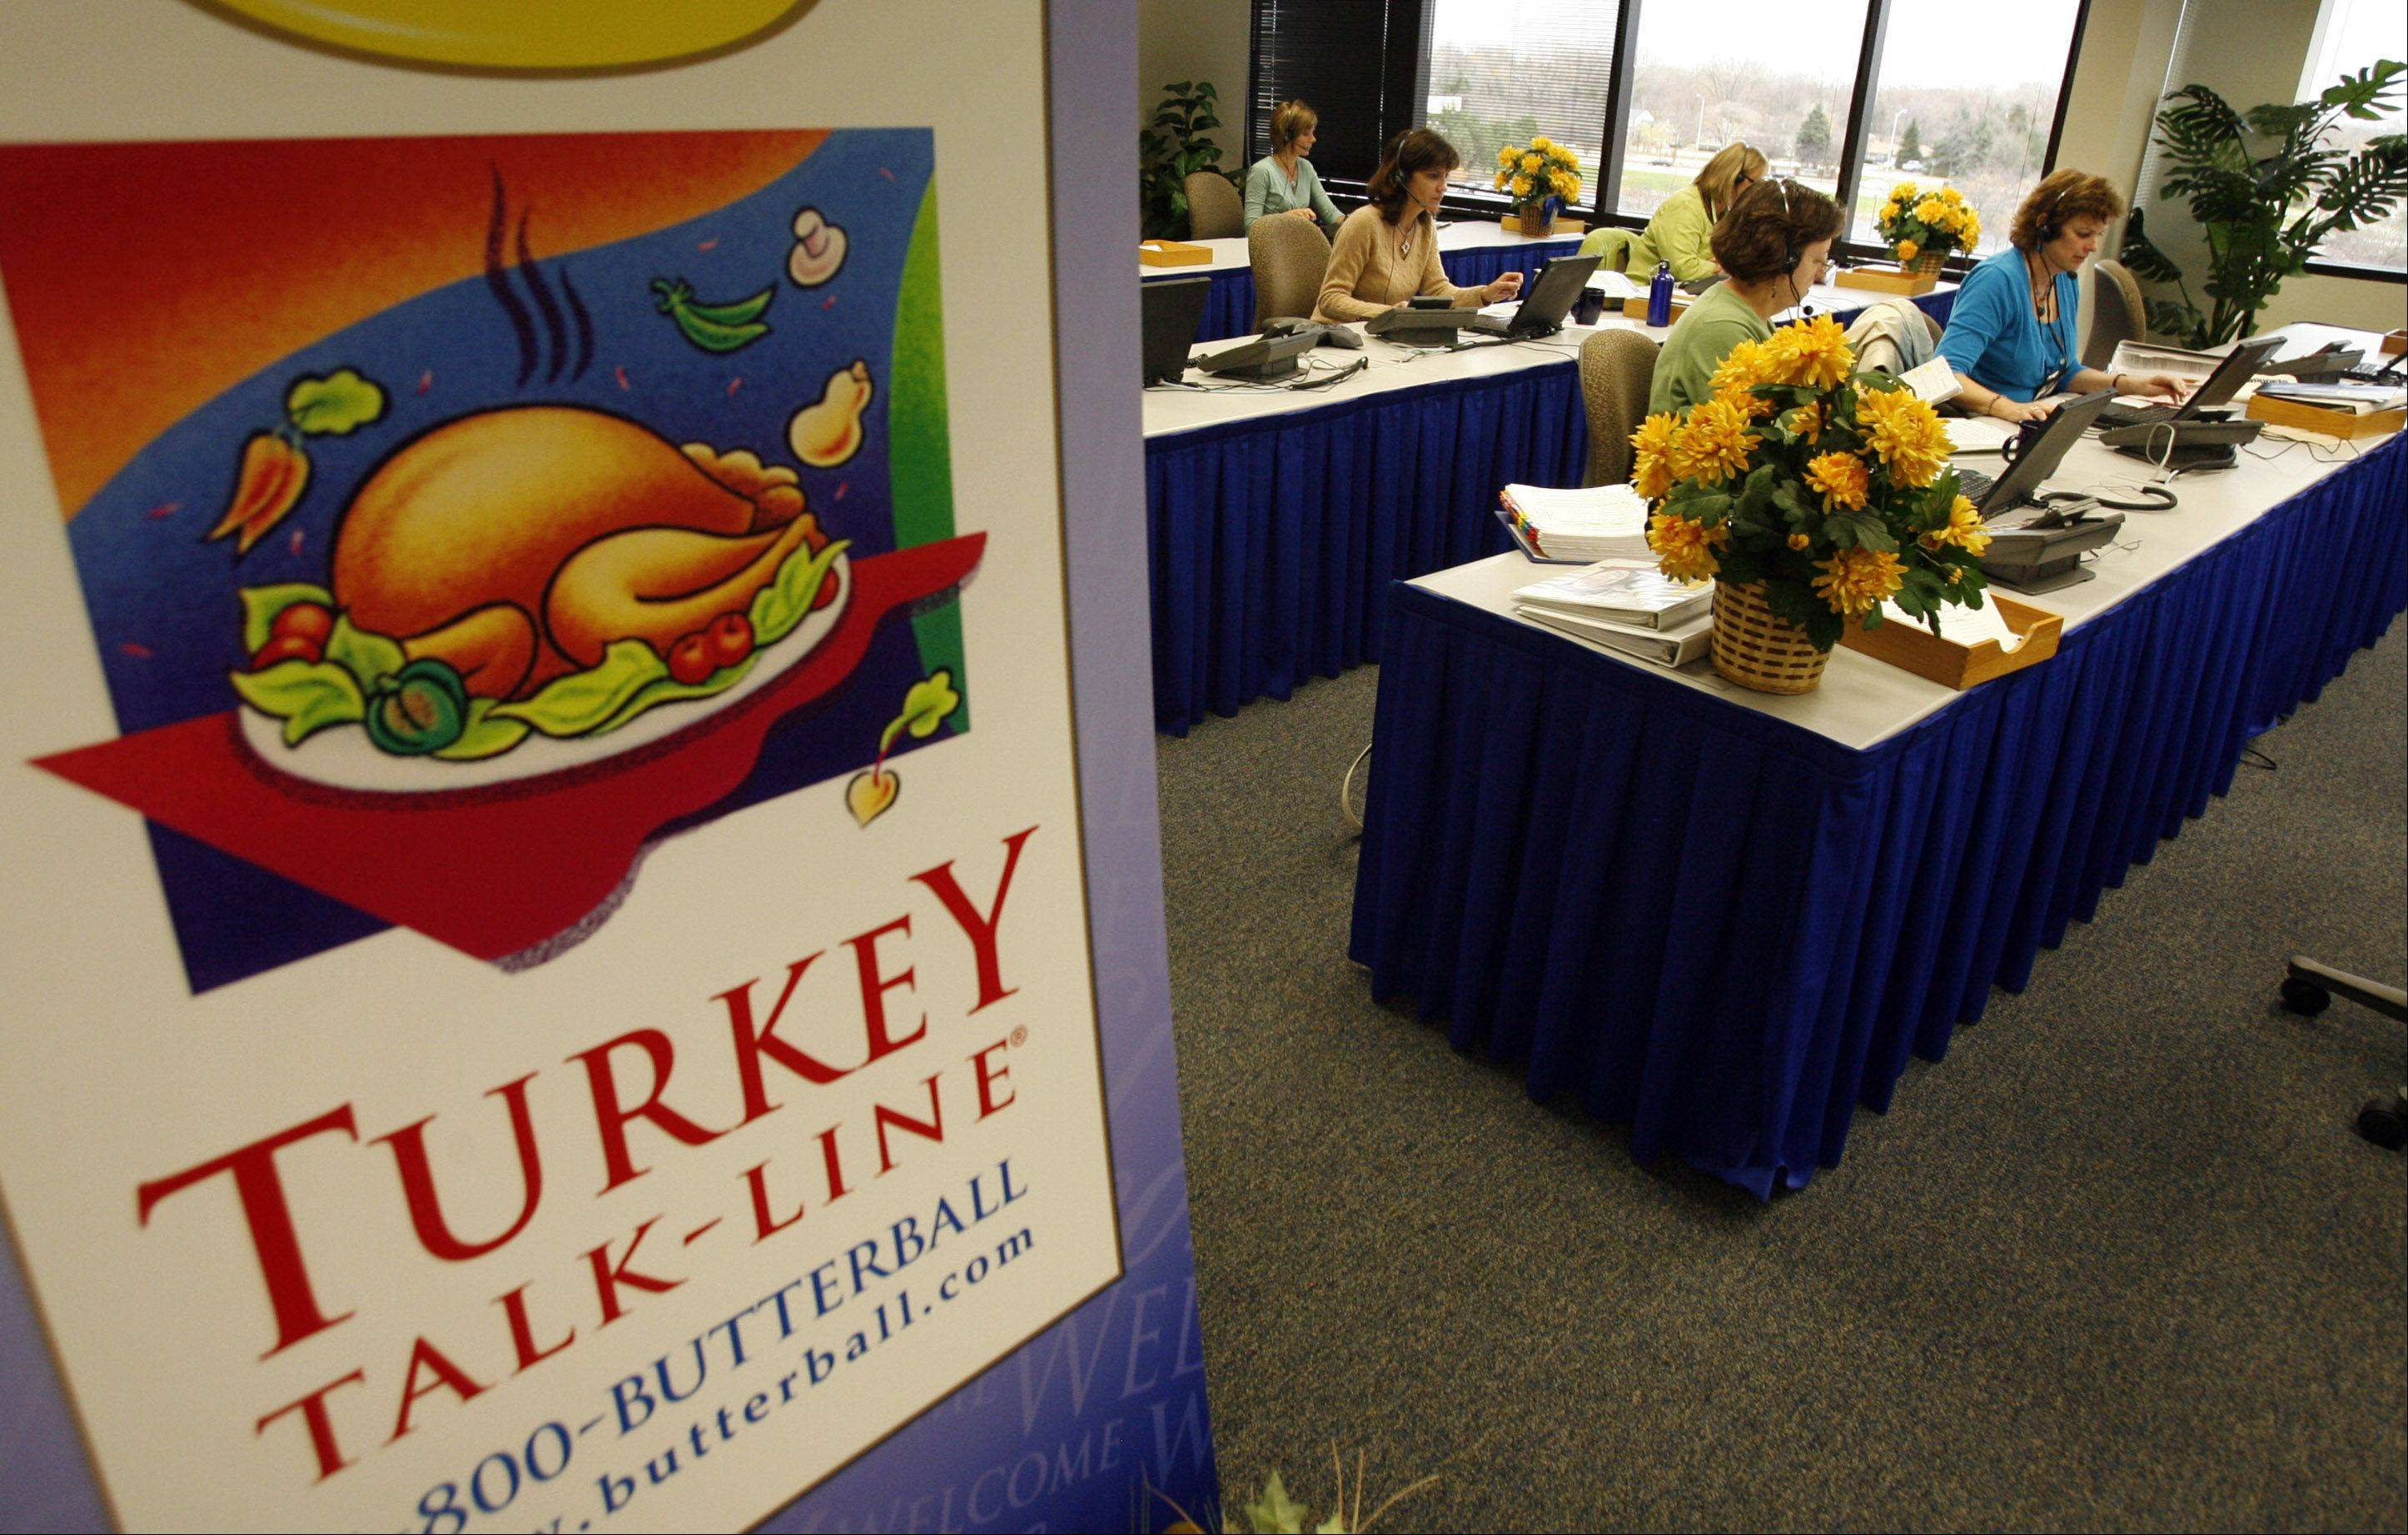 GEORGE LECLAIRE/DAILY HERALDButterball announced last week it will have only a limited supply of large, fresh turkeys that are 16 pounds or heavier for the holidays.